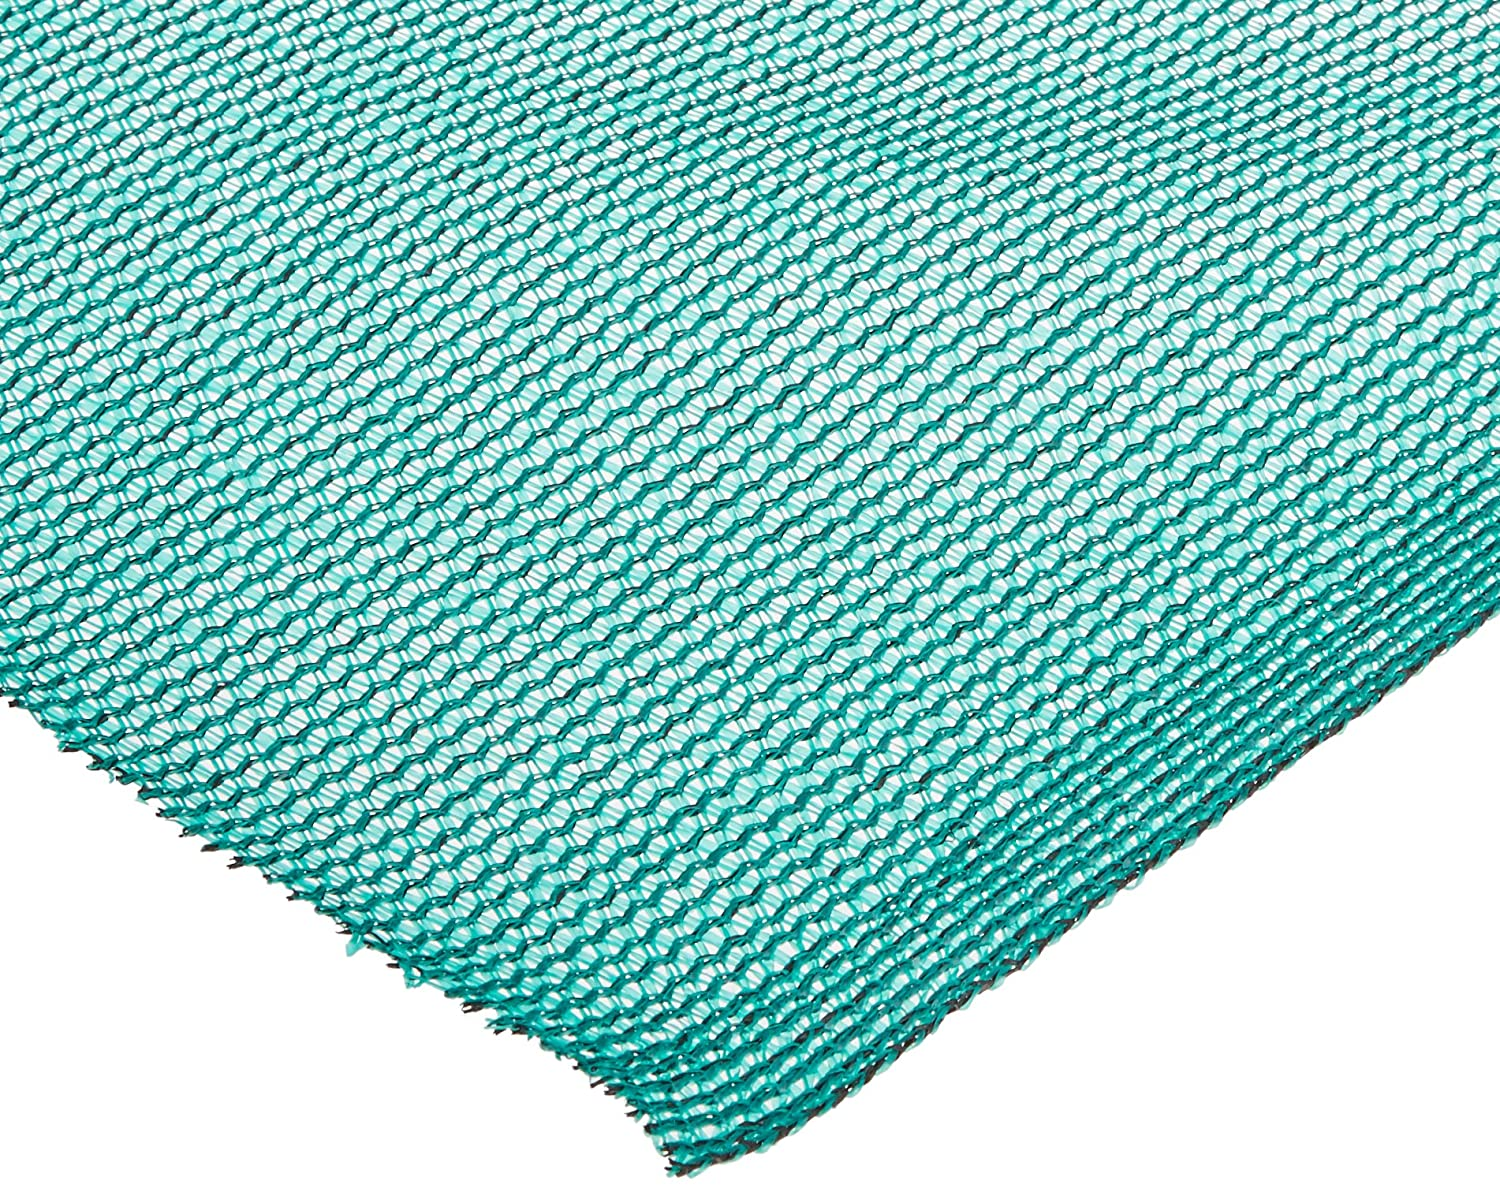 Easy Gardener Sun Screen Fabric (Reduces Temperature Up to 15 Degrees, Provides 75% More Shade) Teal Green Shade Fabric, 6 Feet x 20 Feet 74020P